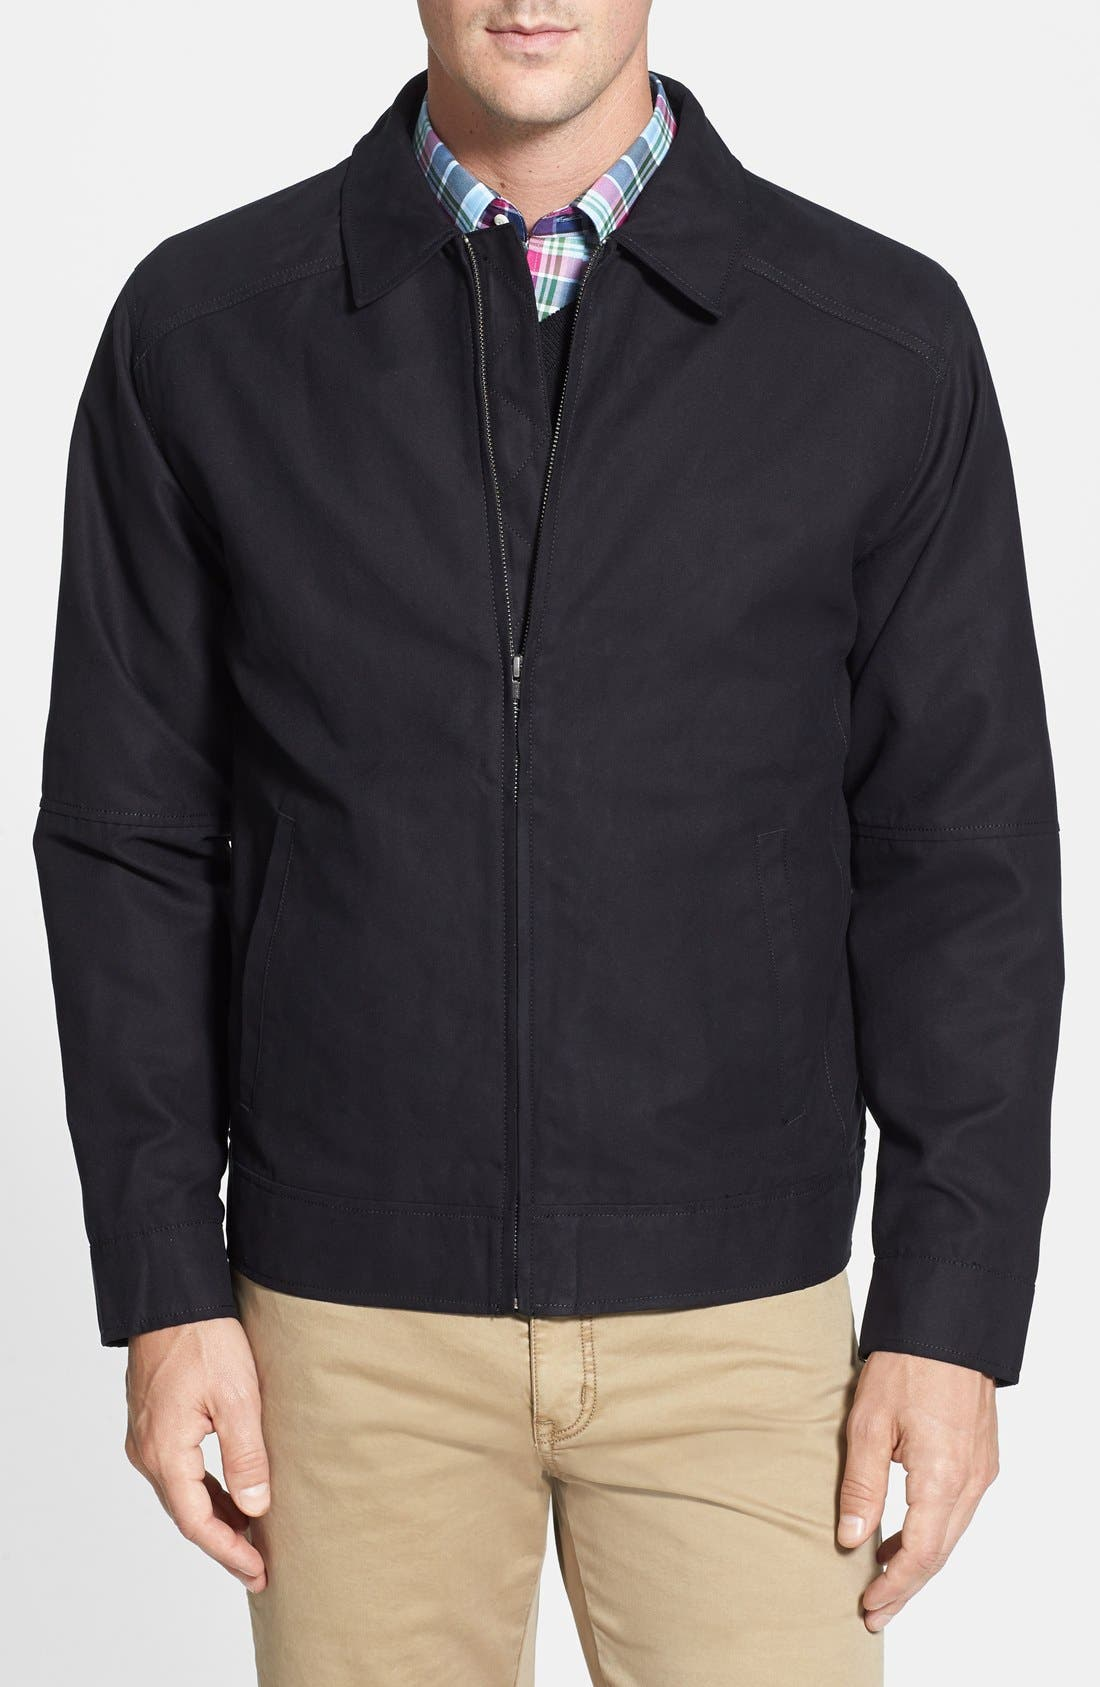 Roosevelt Water Resistant Full Zip Jacket,                             Main thumbnail 1, color,                             BLACK